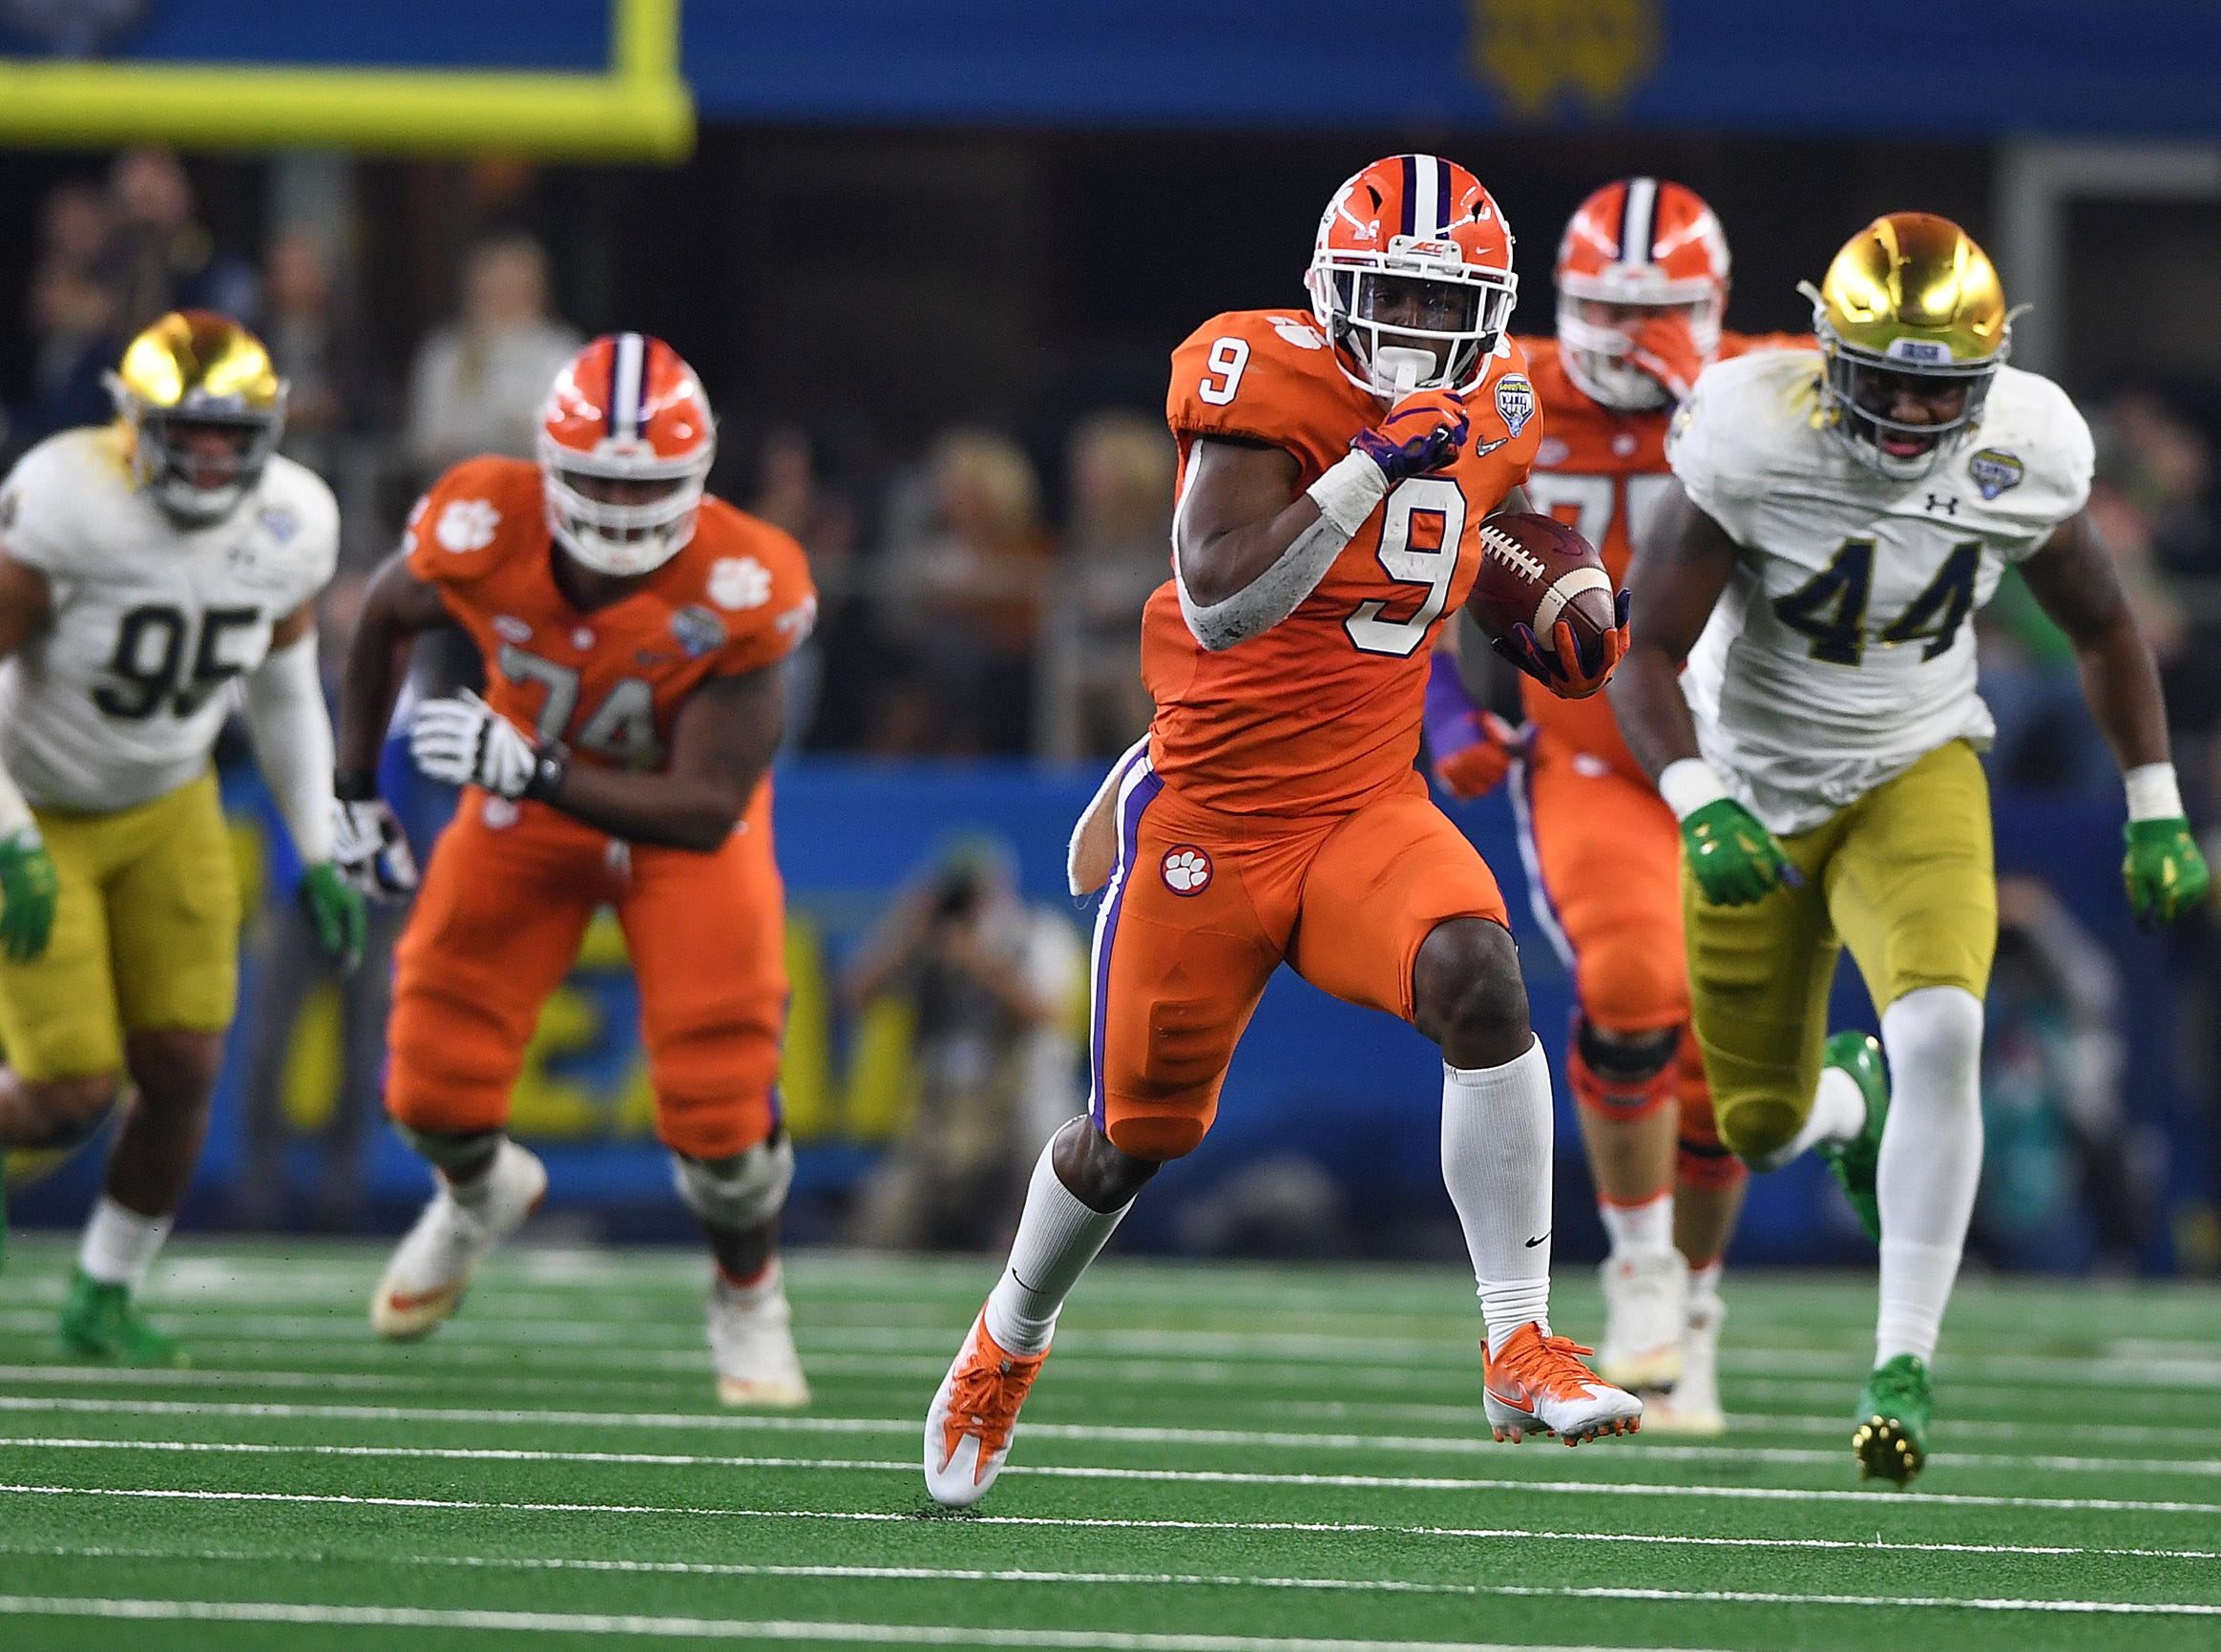 Clemson running back Travis Etienne (9) races 62 yards to score against Notre Dame during the 3rd quarter of the Goodyear Cotton Bowl at AT&T stadium in Arlington, TX Saturday, December 29, 2018.